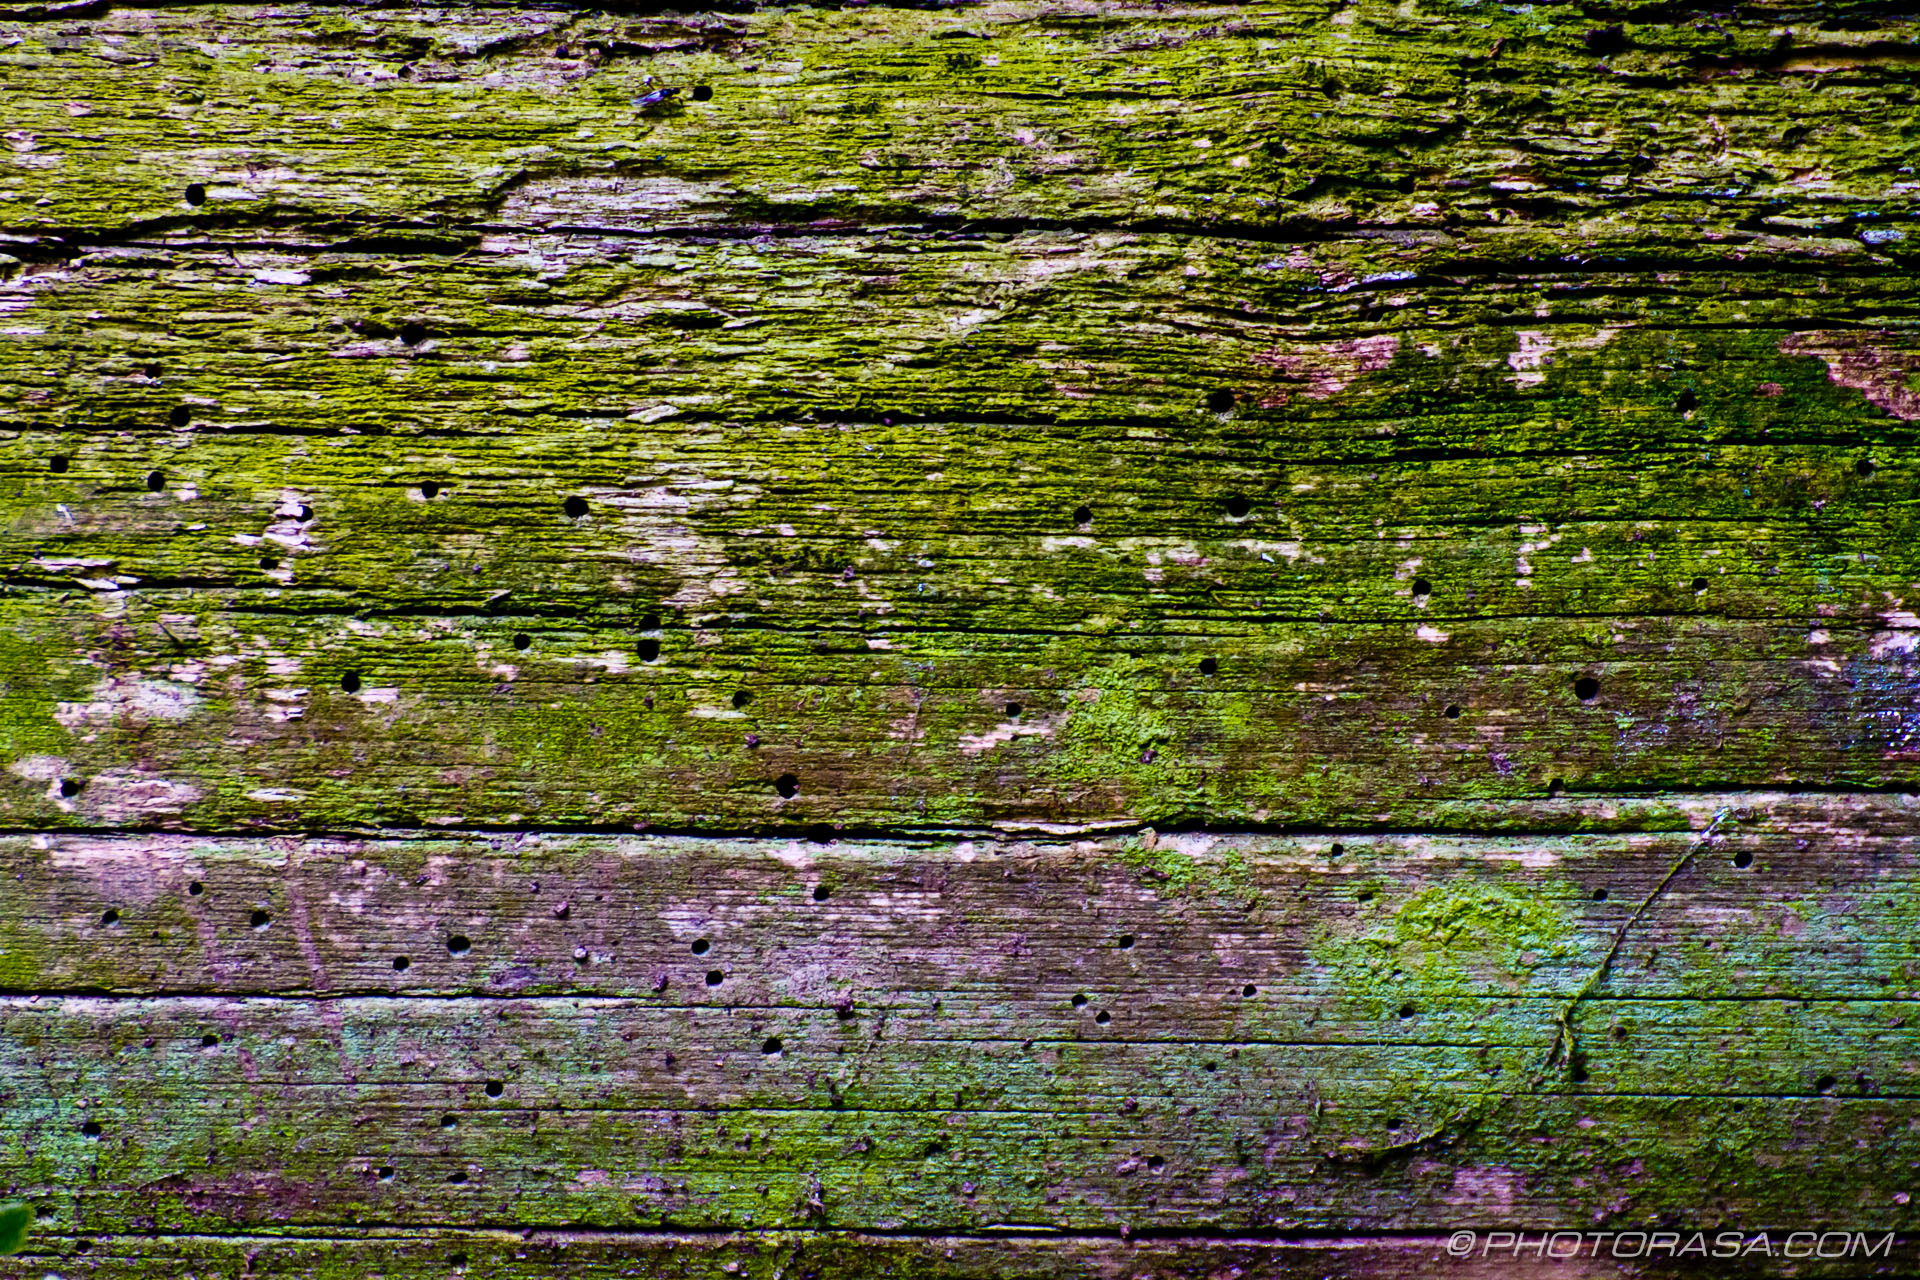 http://photorasa.com/wood-and-bark-textures/old-wood-with-woodworm-and-moss-stains/